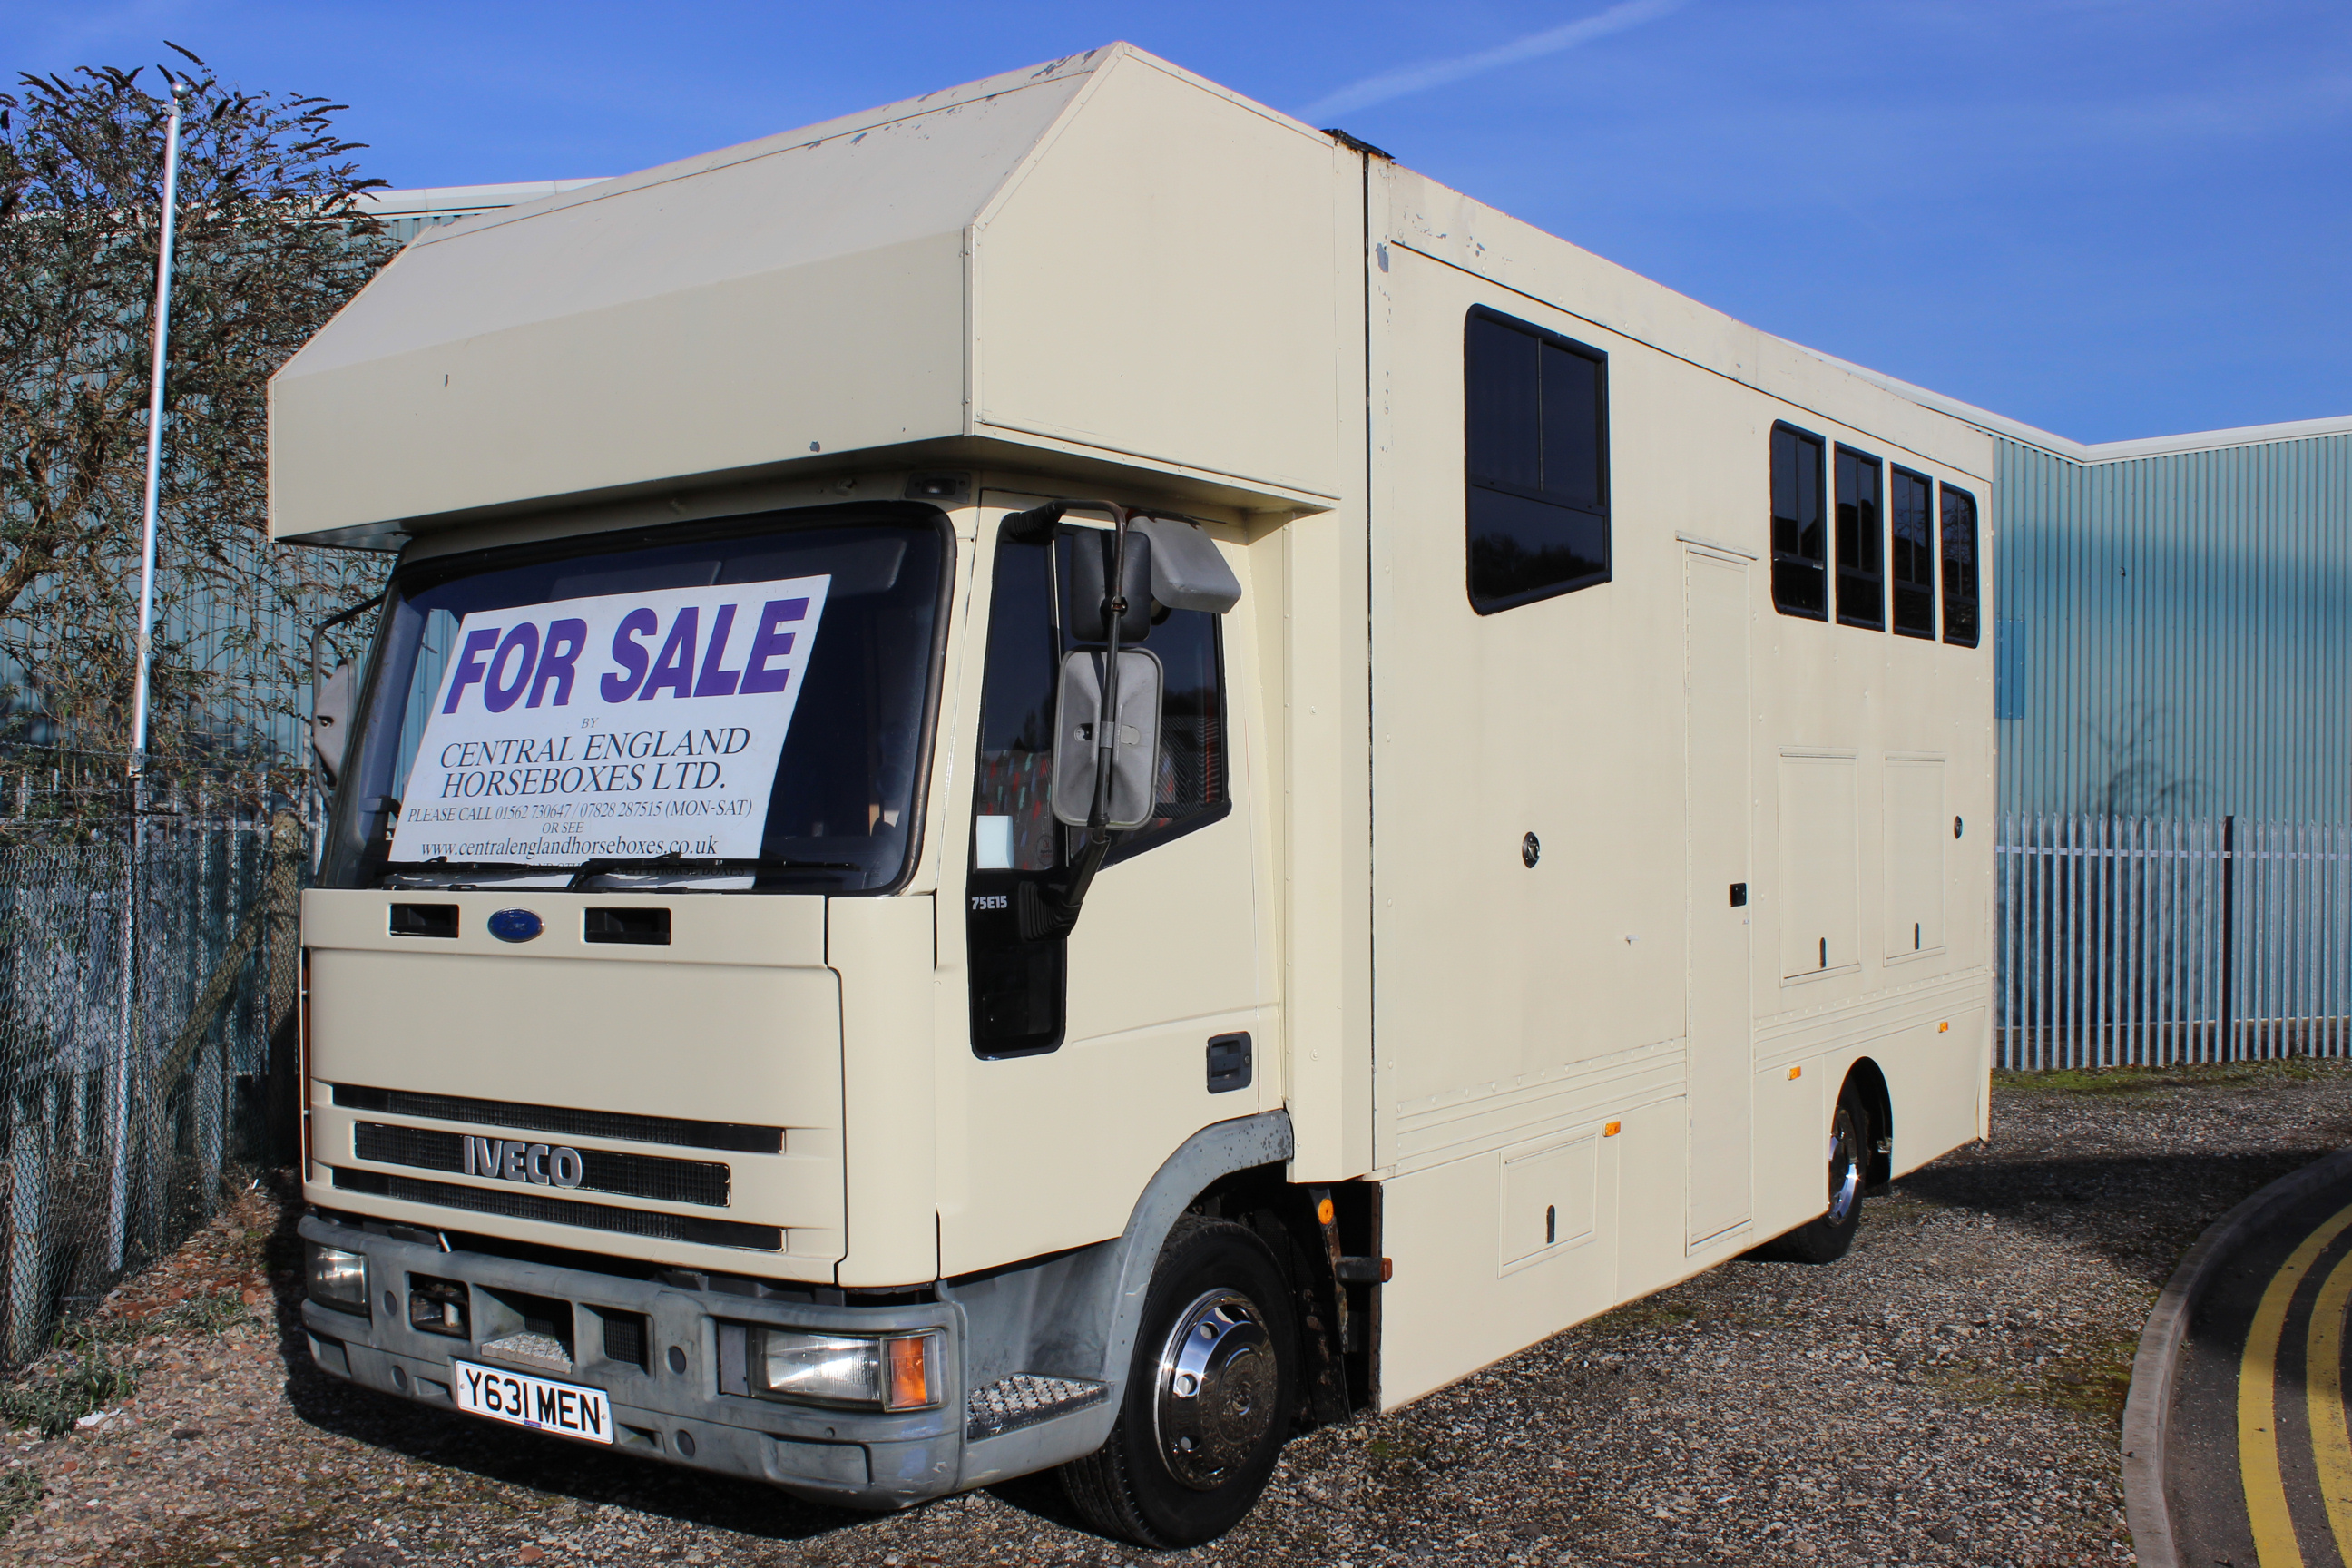 7 5t 3 Stall Iveco Horsebox For Sale By Central England